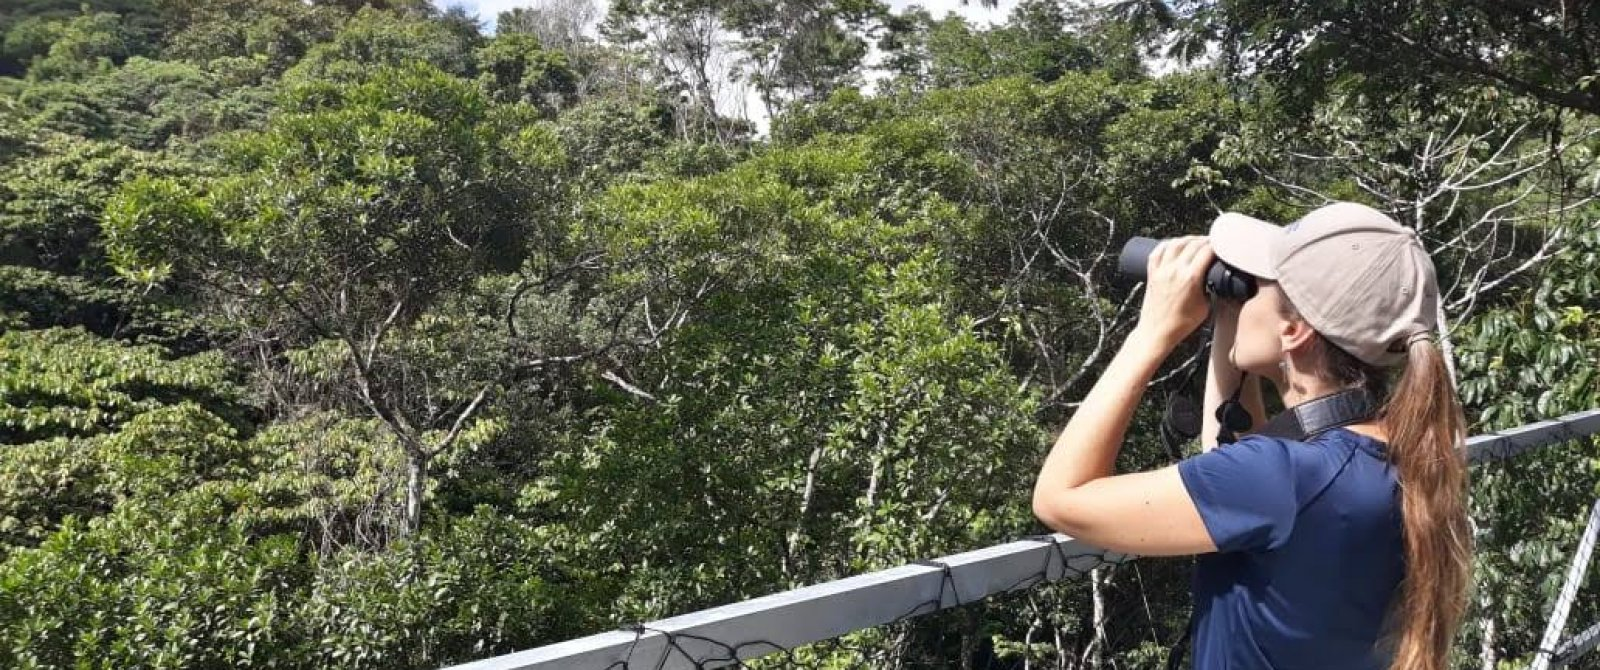 Birdwatcher with binoculars in the forests of Brazil